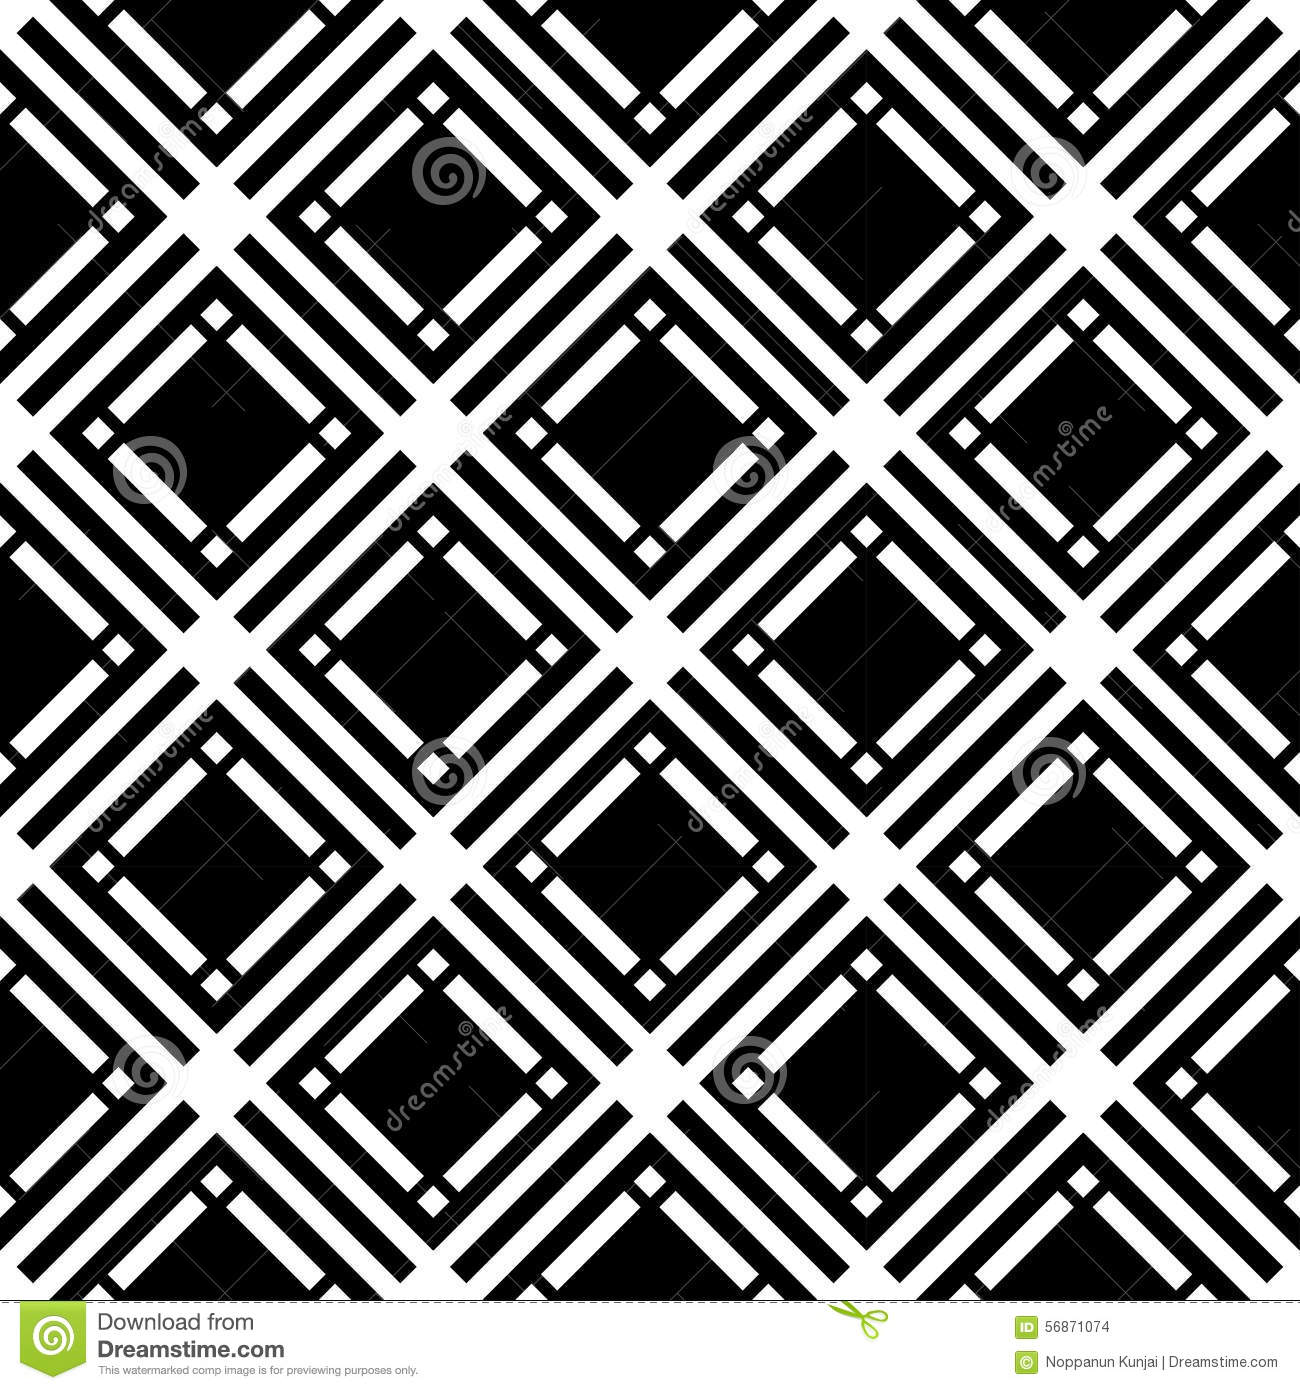 Black And White Geometric Seamless Pattern With Square And